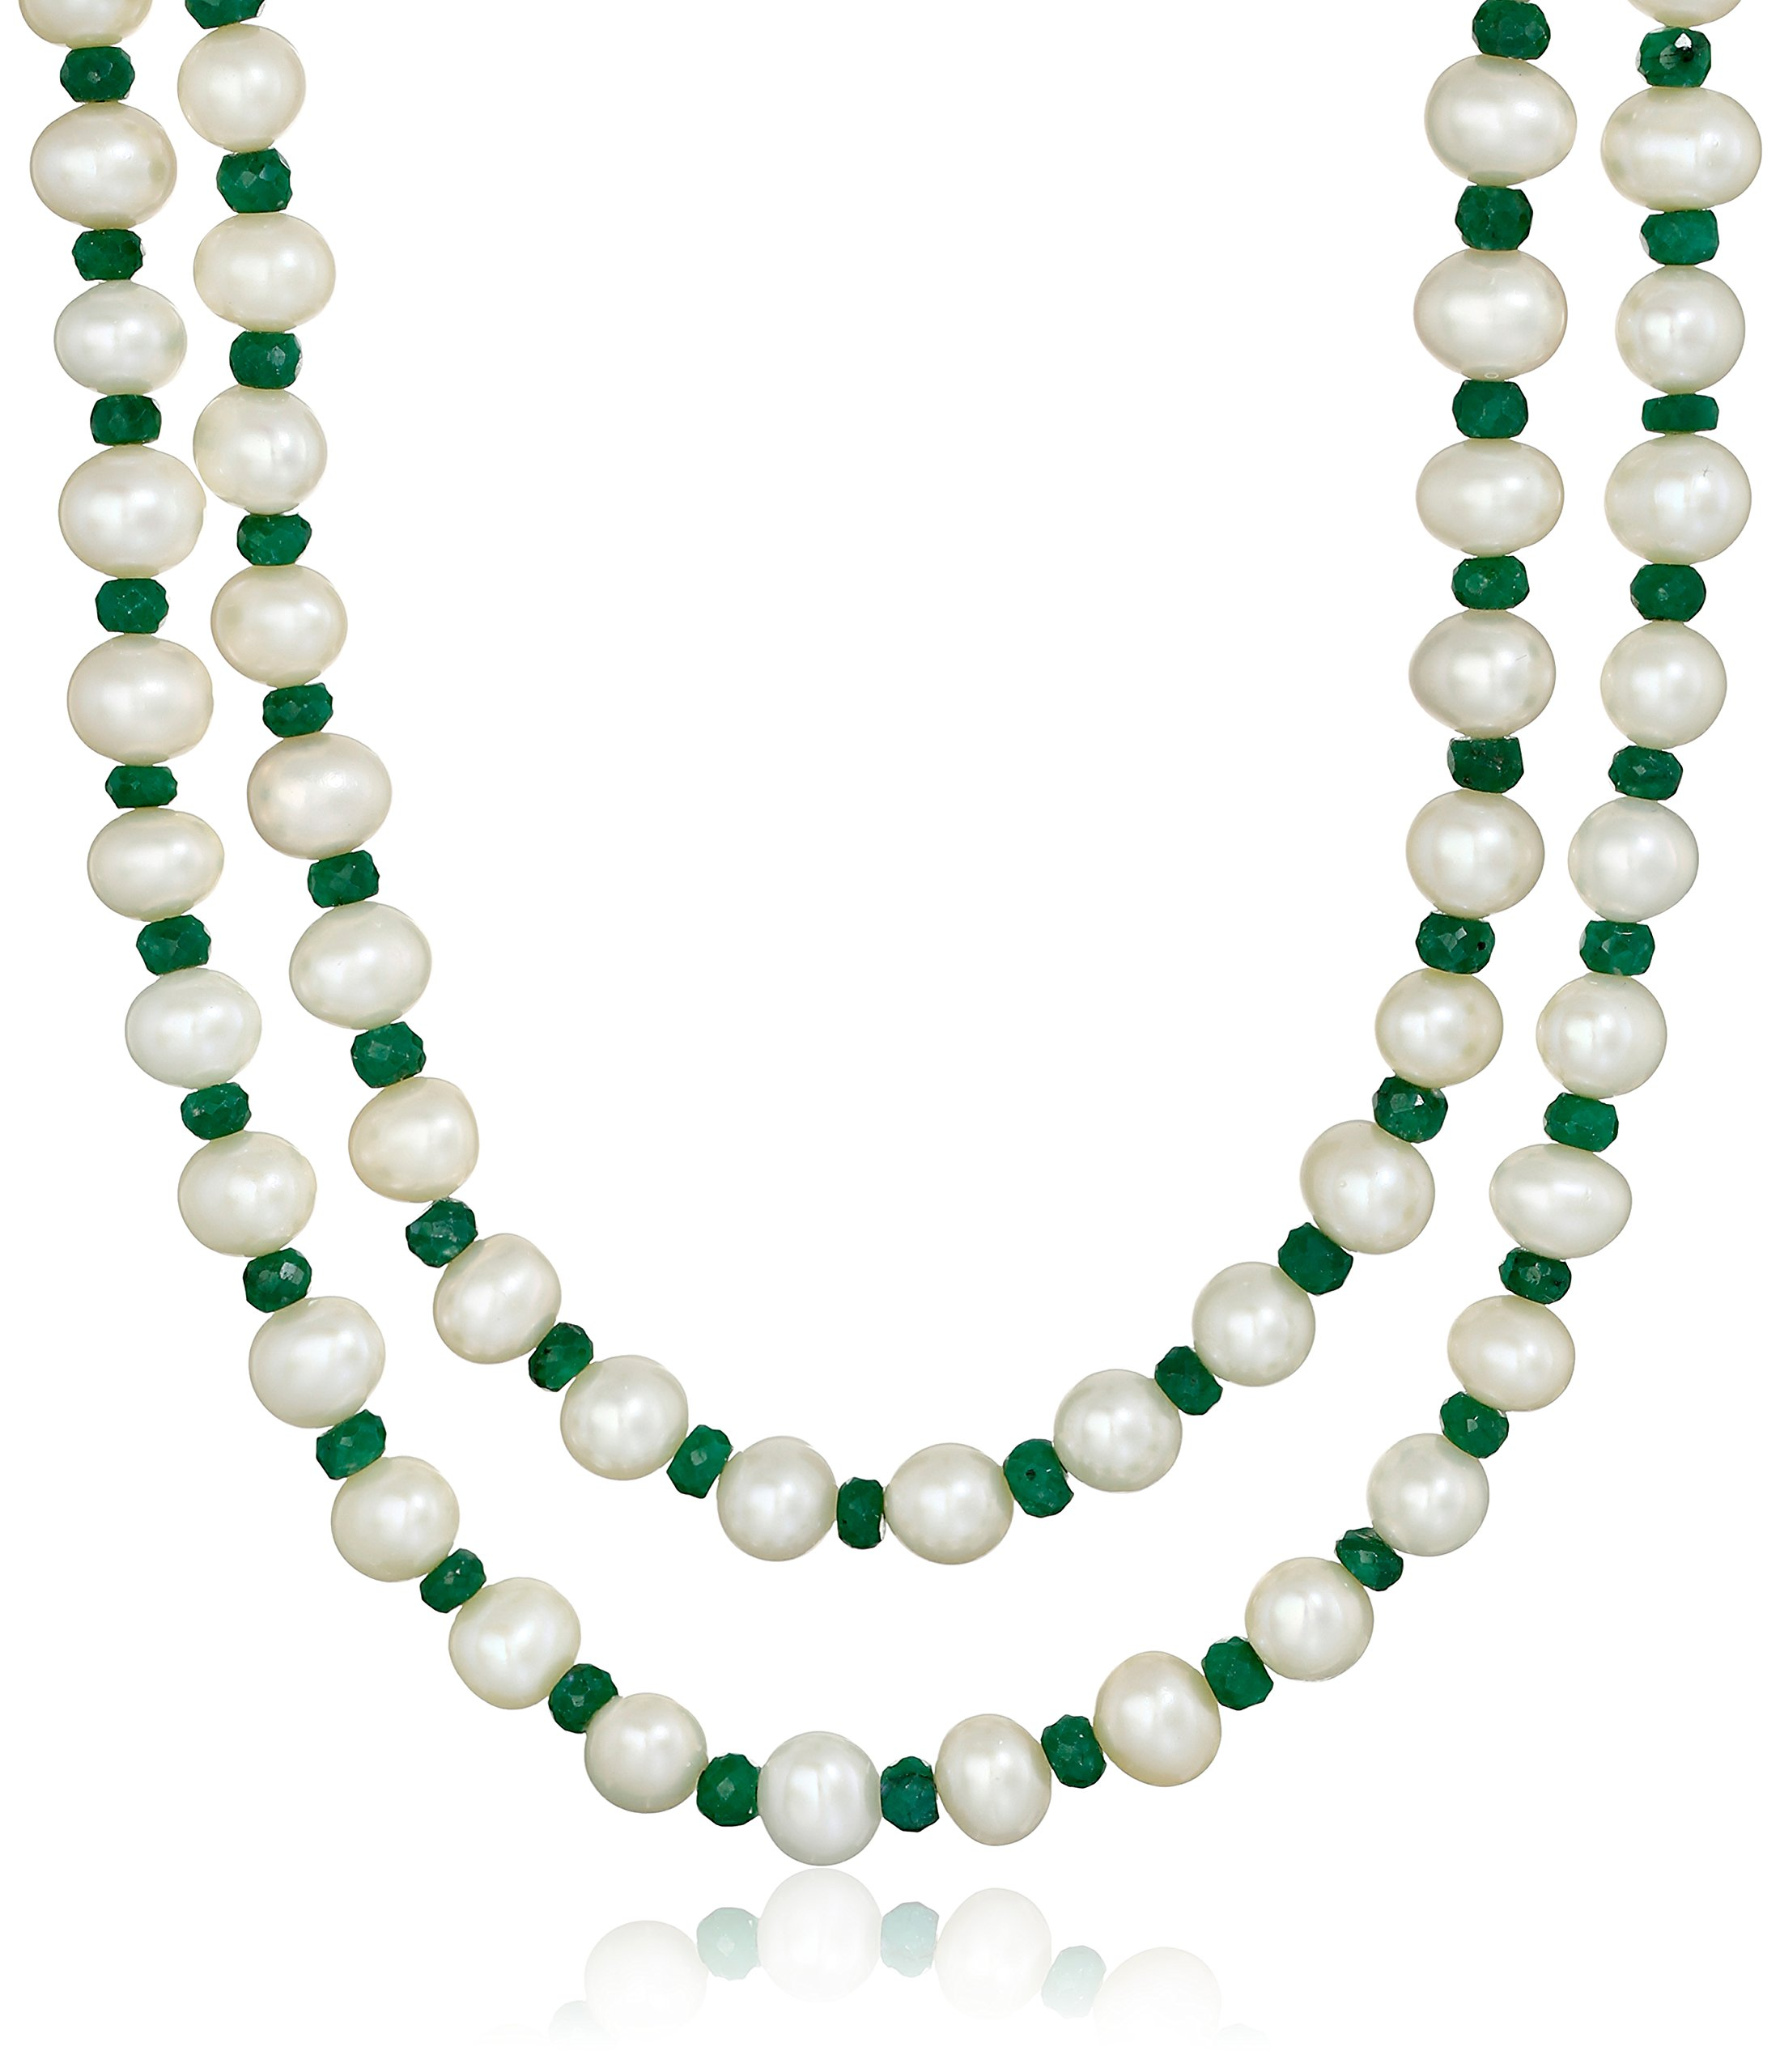 7-7.5mm White Cultured Freshwater Pearls with 4-5mm Green Emerald Gemstone Endless Strand Necklace, 50''